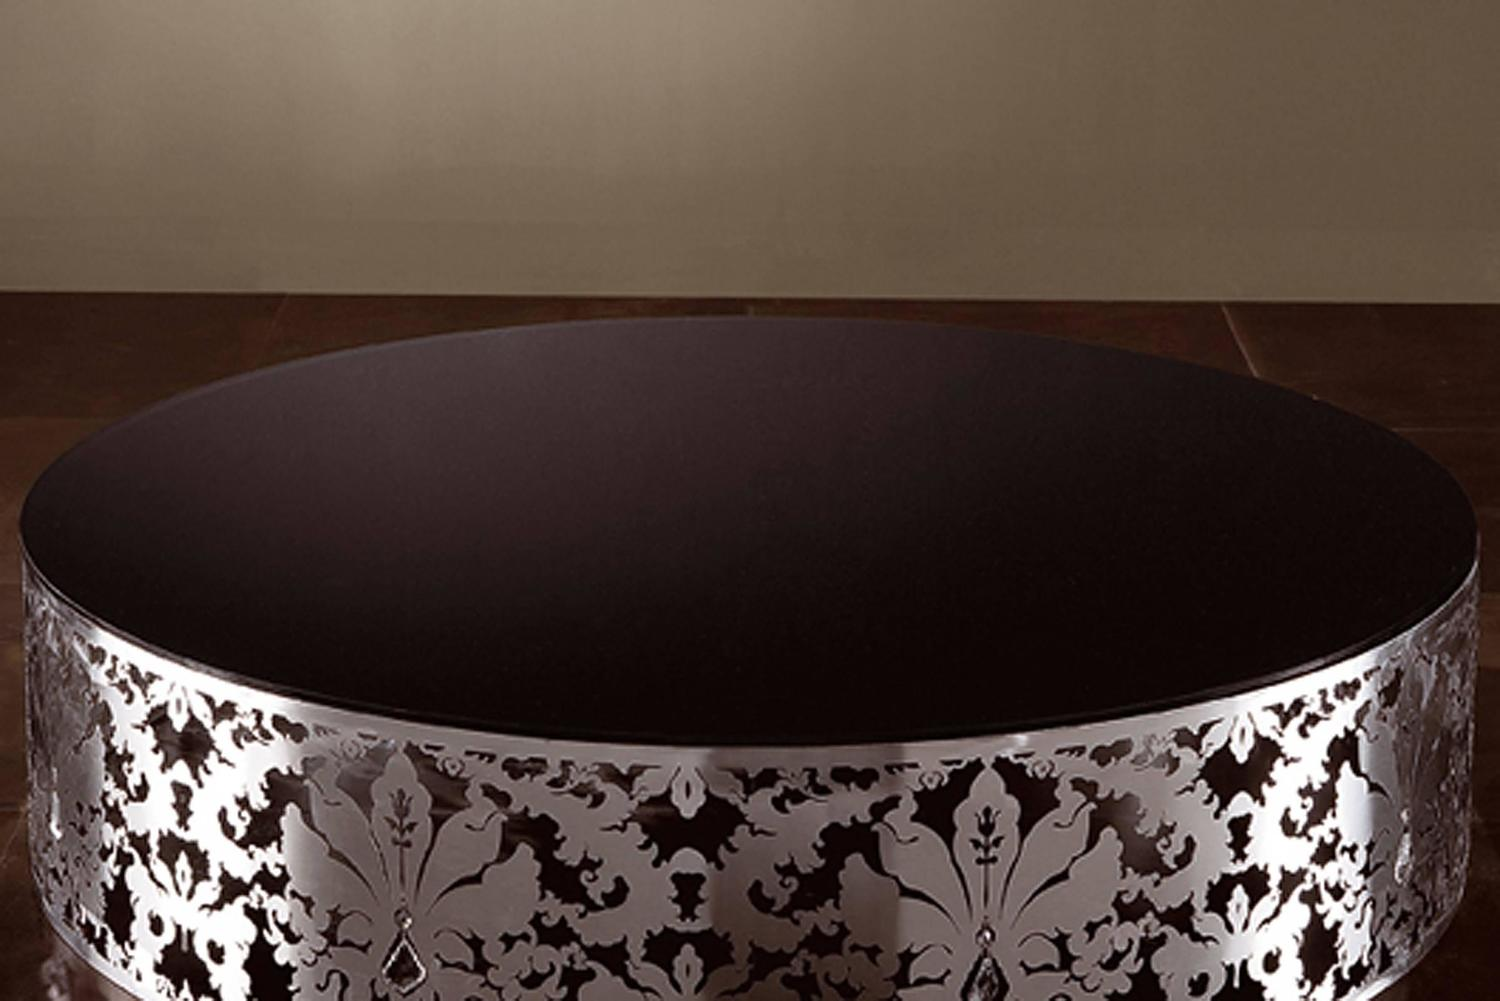 Flora Round Coffee Table With Stainless Steel Base And Black Or White Glass Top For Sale At 1stdibs